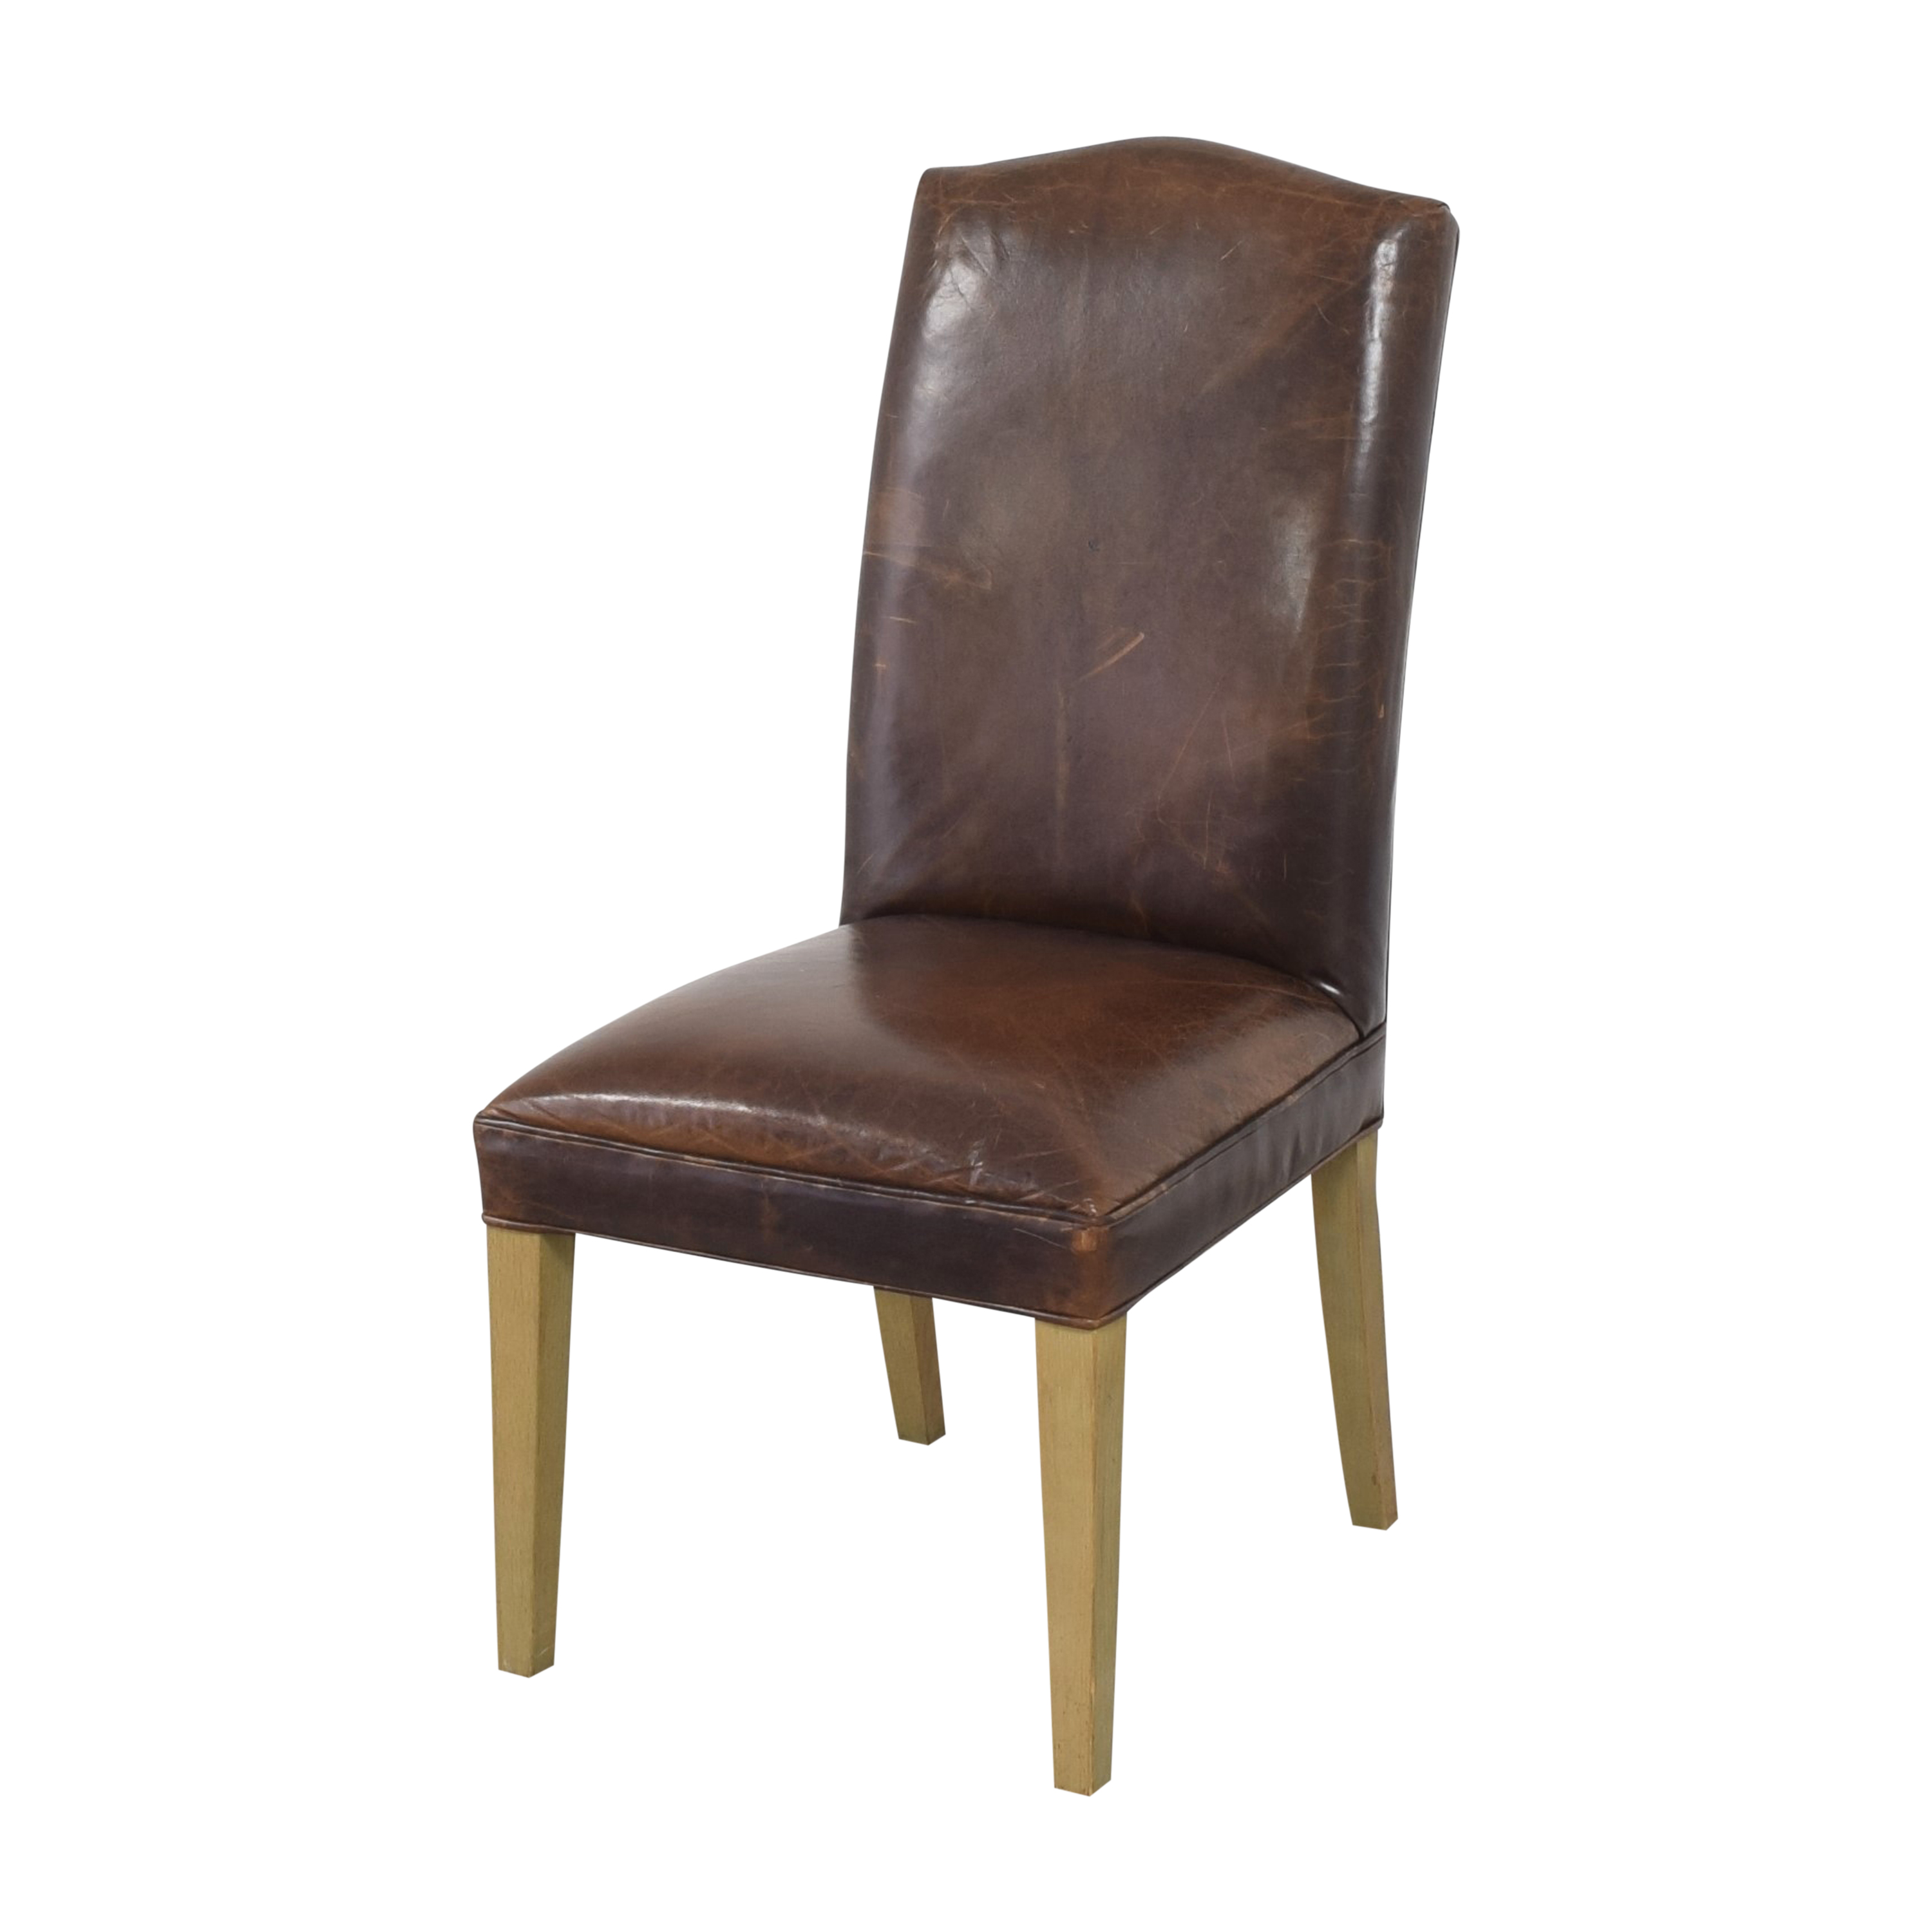 Restoration Hardware Restoration Hardware Hudson Camelback Side Chairs for sale